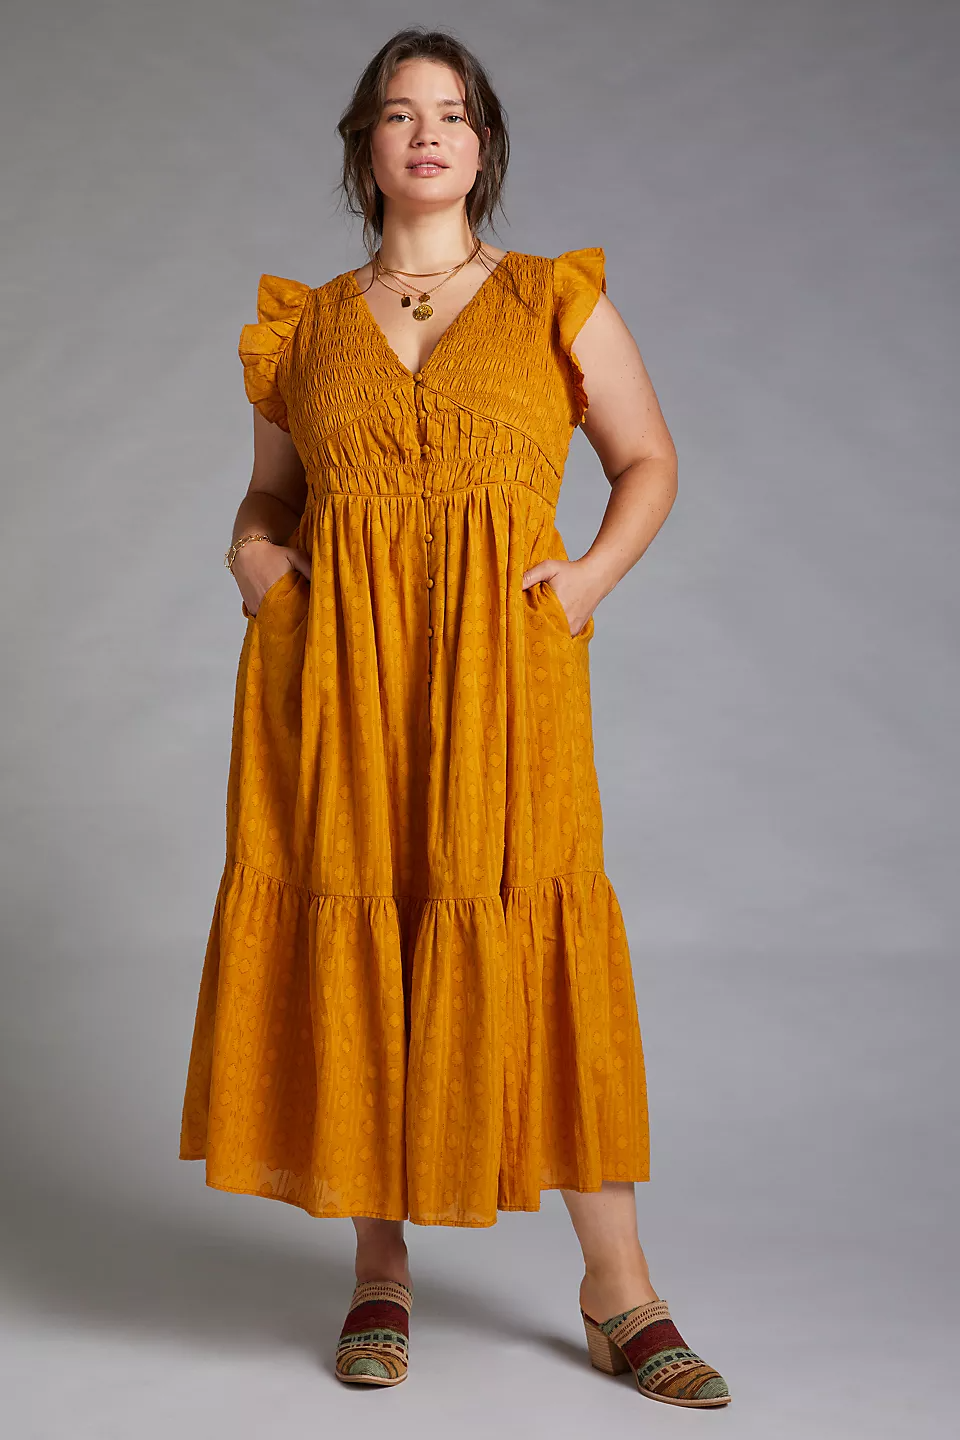 """<br><br><strong>Anthropologie</strong> Smocked Ruffle Maxi Dress, $, available at <a href=""""https://go.skimresources.com/?id=30283X879131&url=https%3A%2F%2Fwww.anthropologie.com%2Fshop%2Fsmocked-ruffle-maxi-dress%3Fcolor%3D070%26type%3DPLUS%26quantity%3D1"""" rel=""""nofollow noopener"""" target=""""_blank"""" data-ylk=""""slk:Anthropologie"""" class=""""link rapid-noclick-resp"""">Anthropologie</a>"""